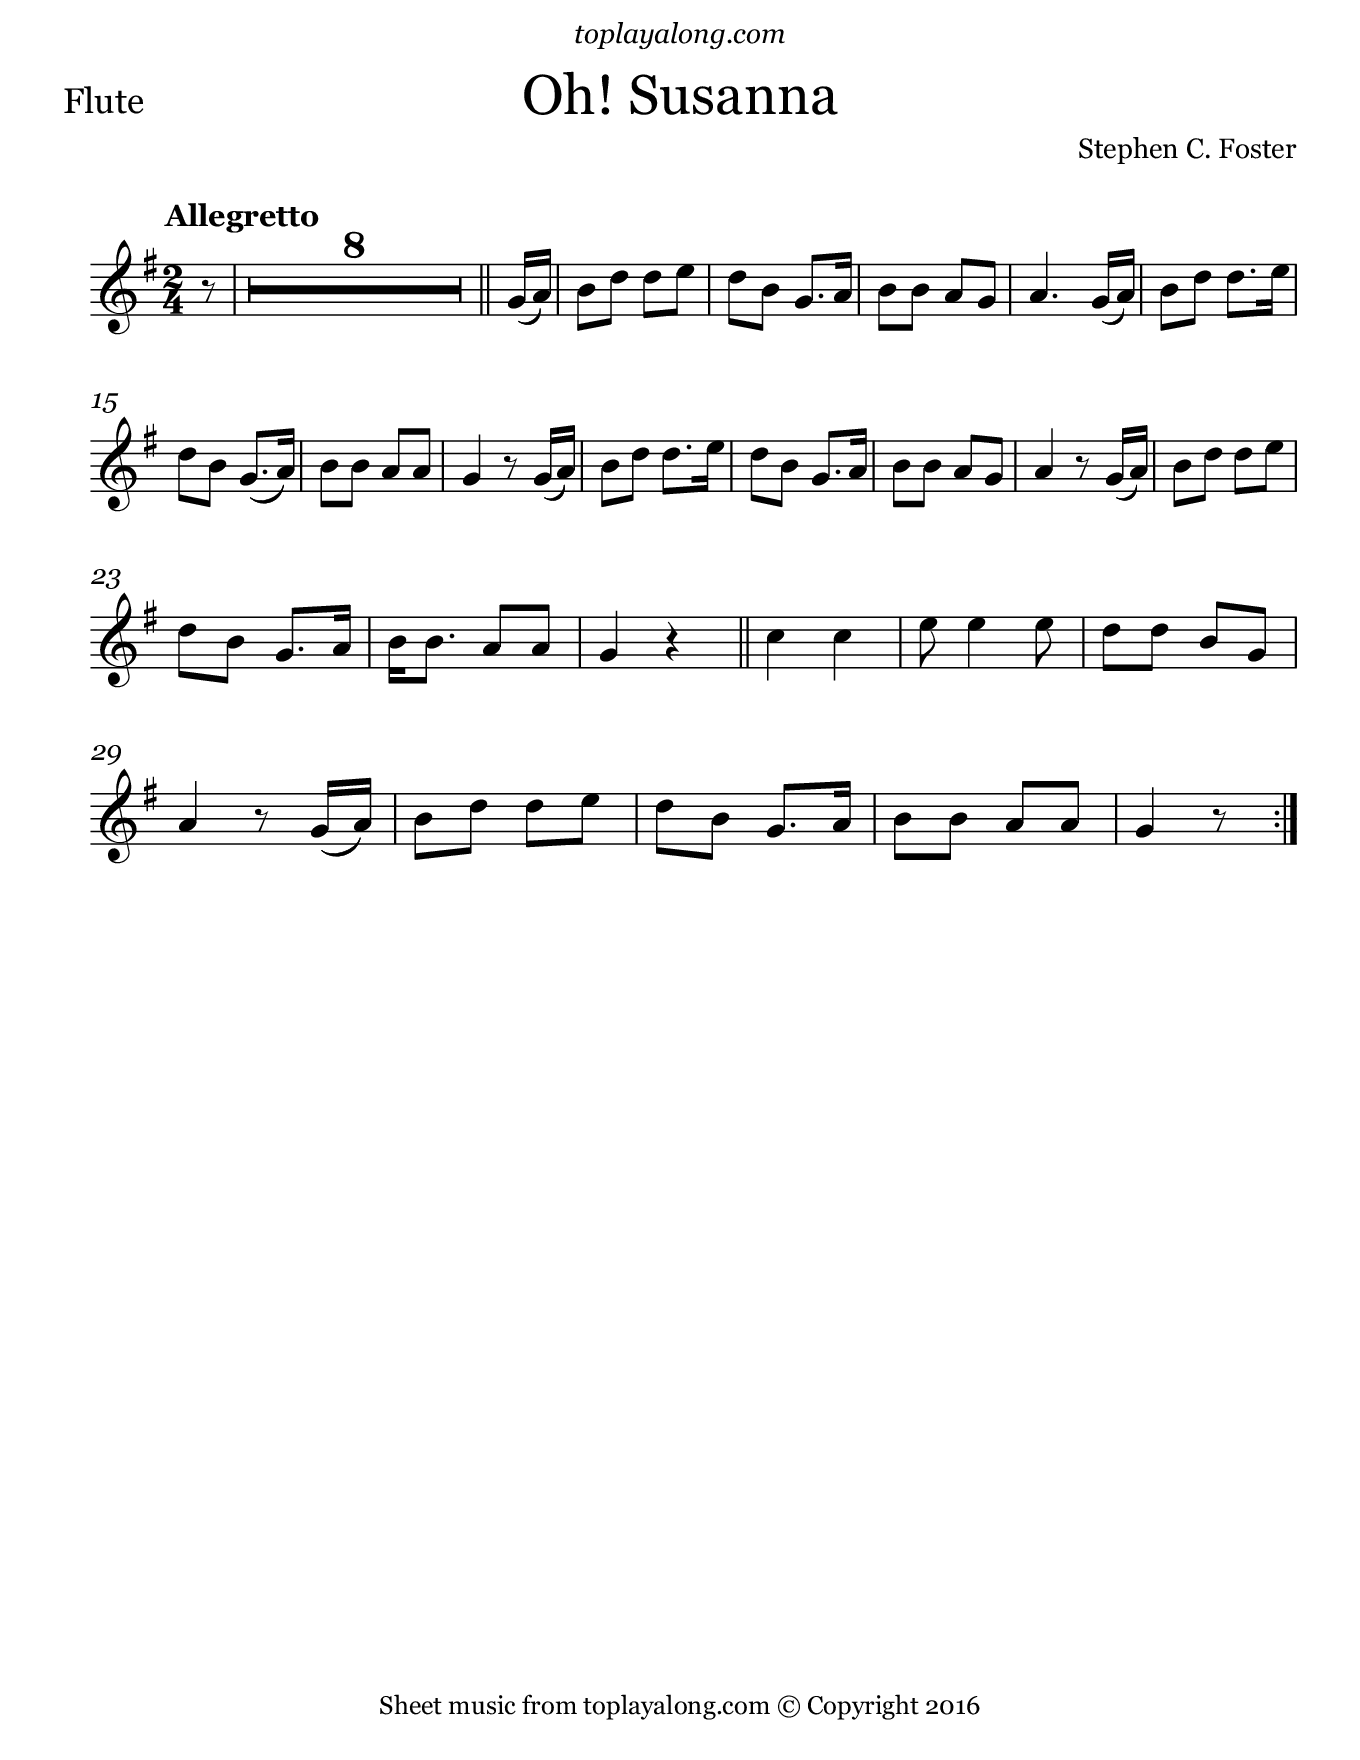 Oh! Susanna by Foster. Sheet music for Flute, page 1.